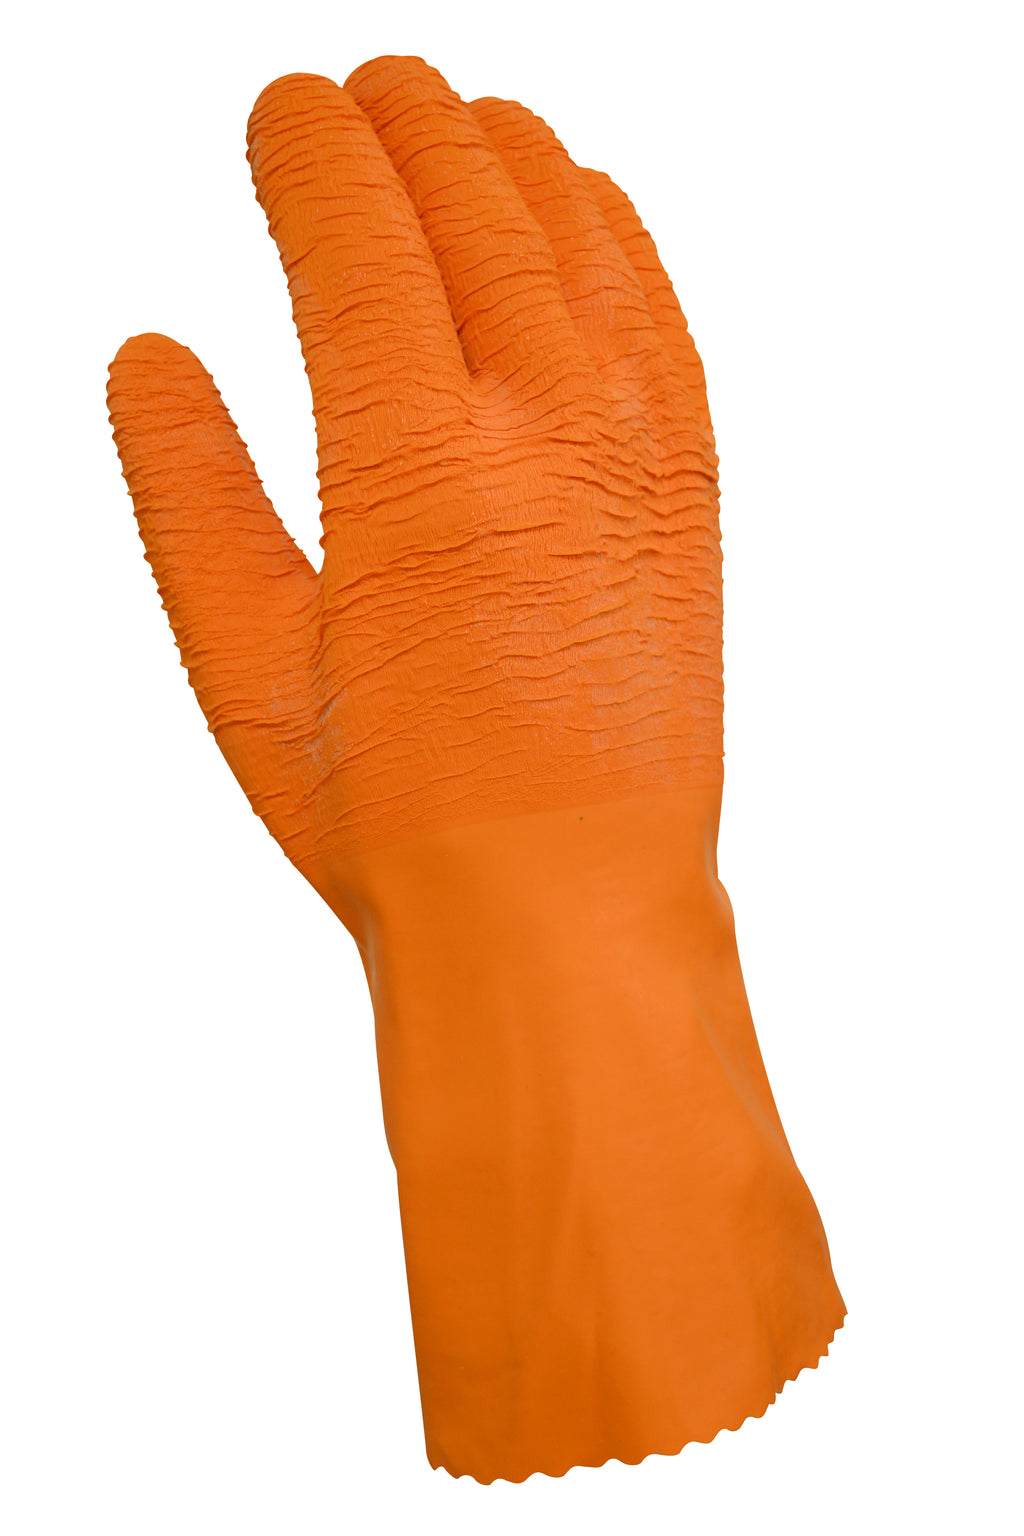 Harpoon Latex Glove